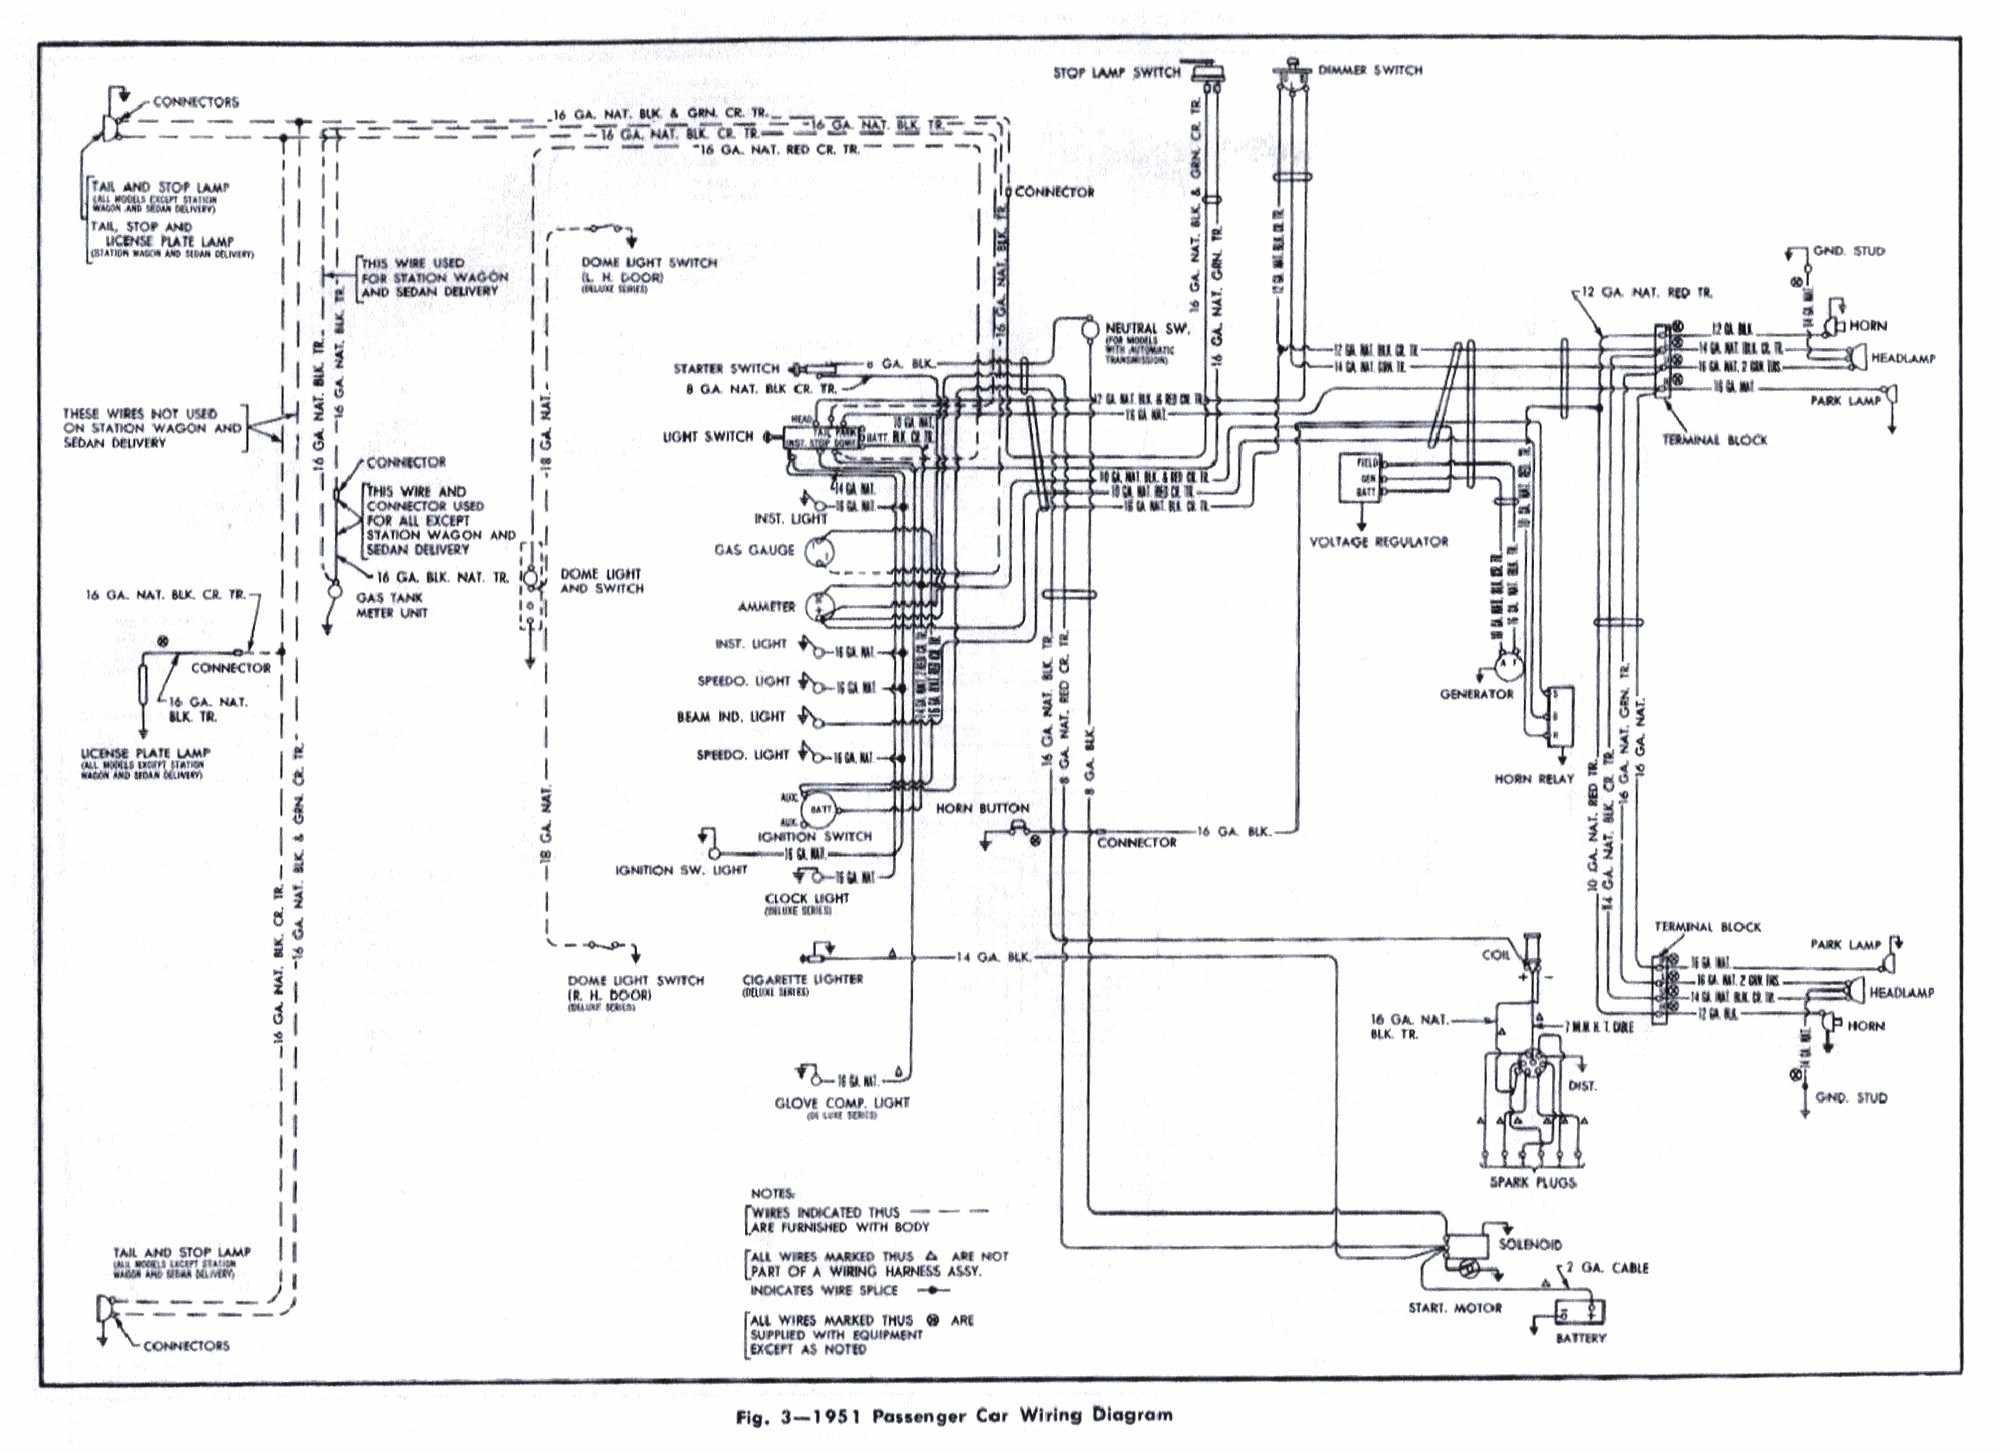 1987 Corvette Radio Wiring Diagrams Free House Diagram 1969 C10 Fuse Box Download Schematic C4 Engine Wire Center U2022 Rh Casiaroc Co 1984 Plug Of 1991